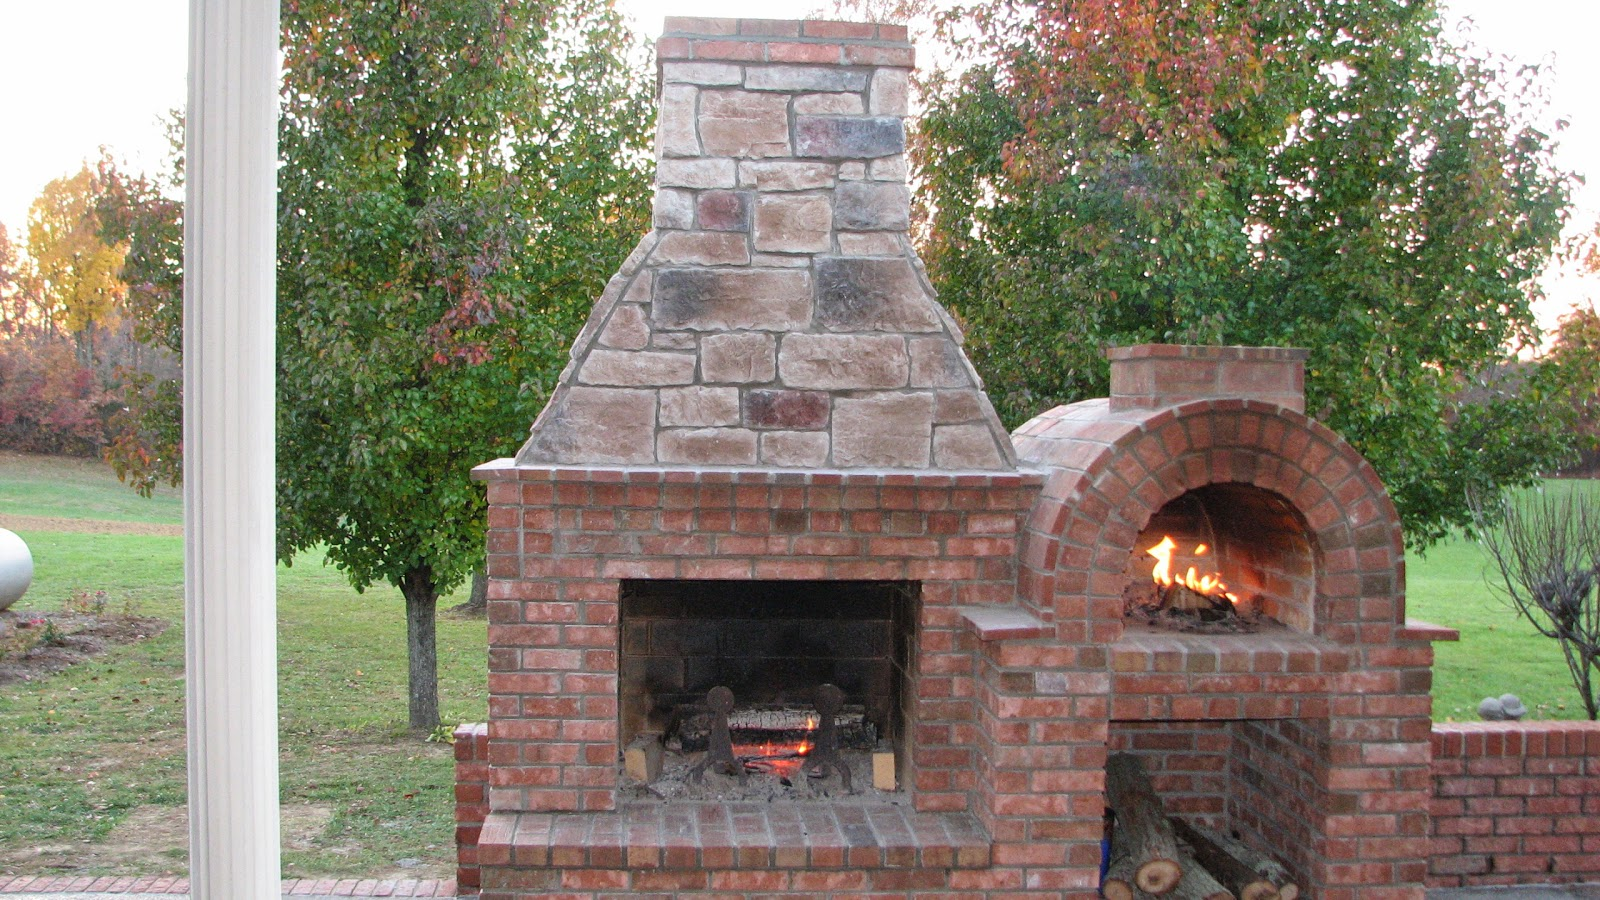 Brickwood Ovens Riley Wood Fired Brick Pizza Oven And Fireplace Combo From A Diy Master In Kentucky